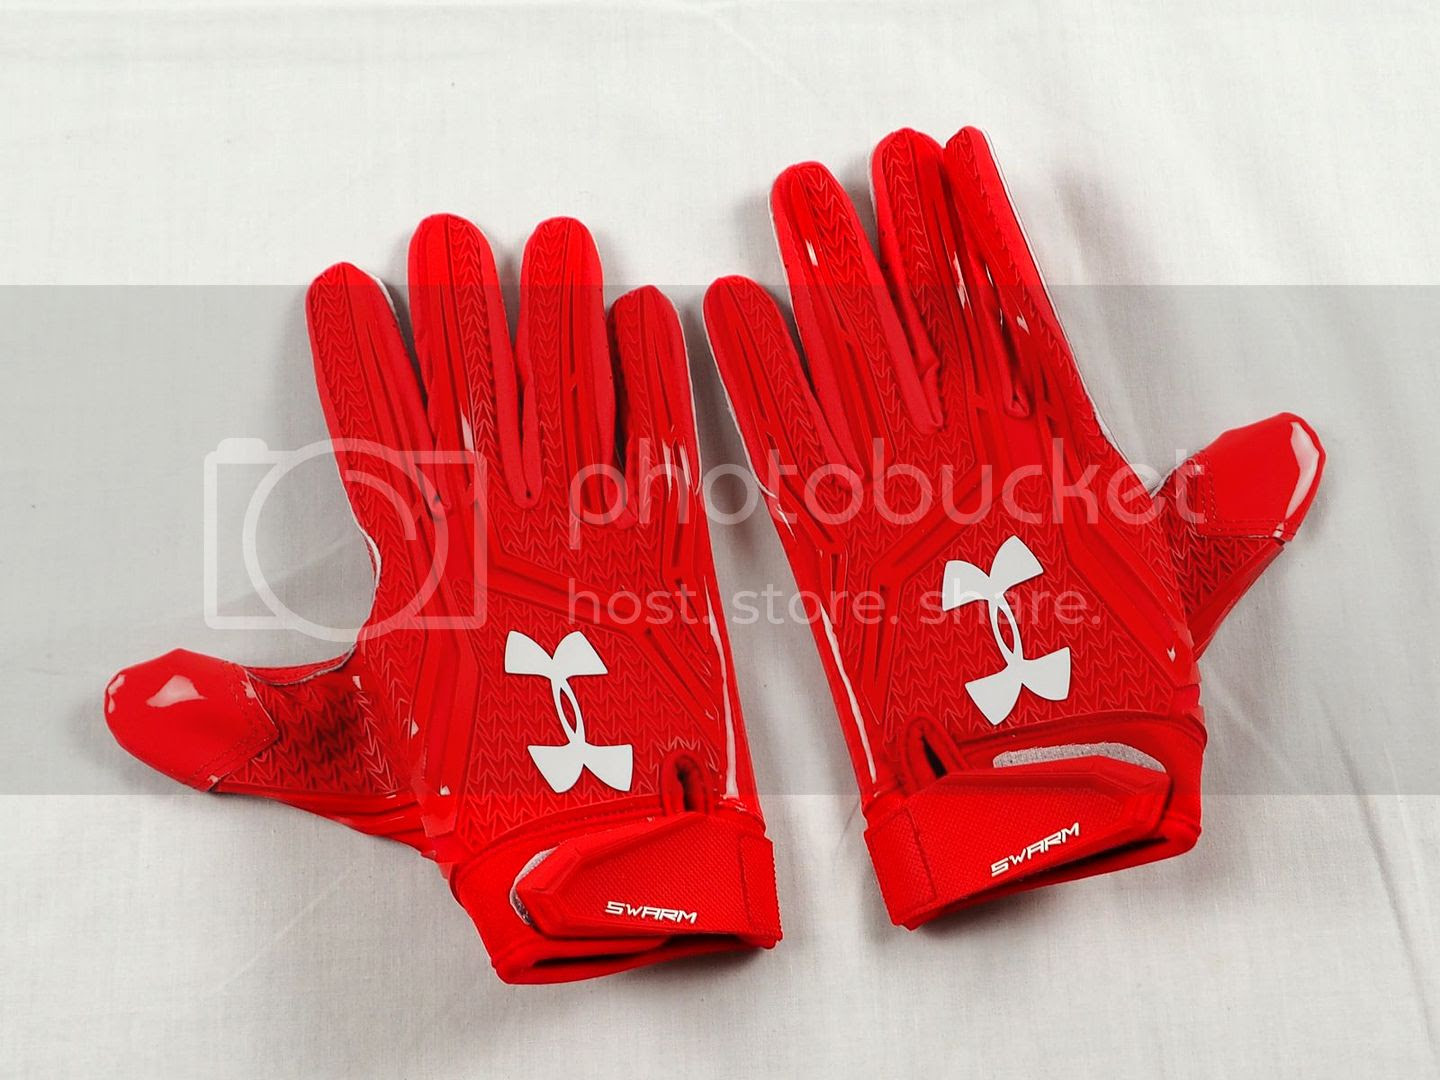 NEW Under Armour Swarm  Red NFL Receiver Gloves L  eBay